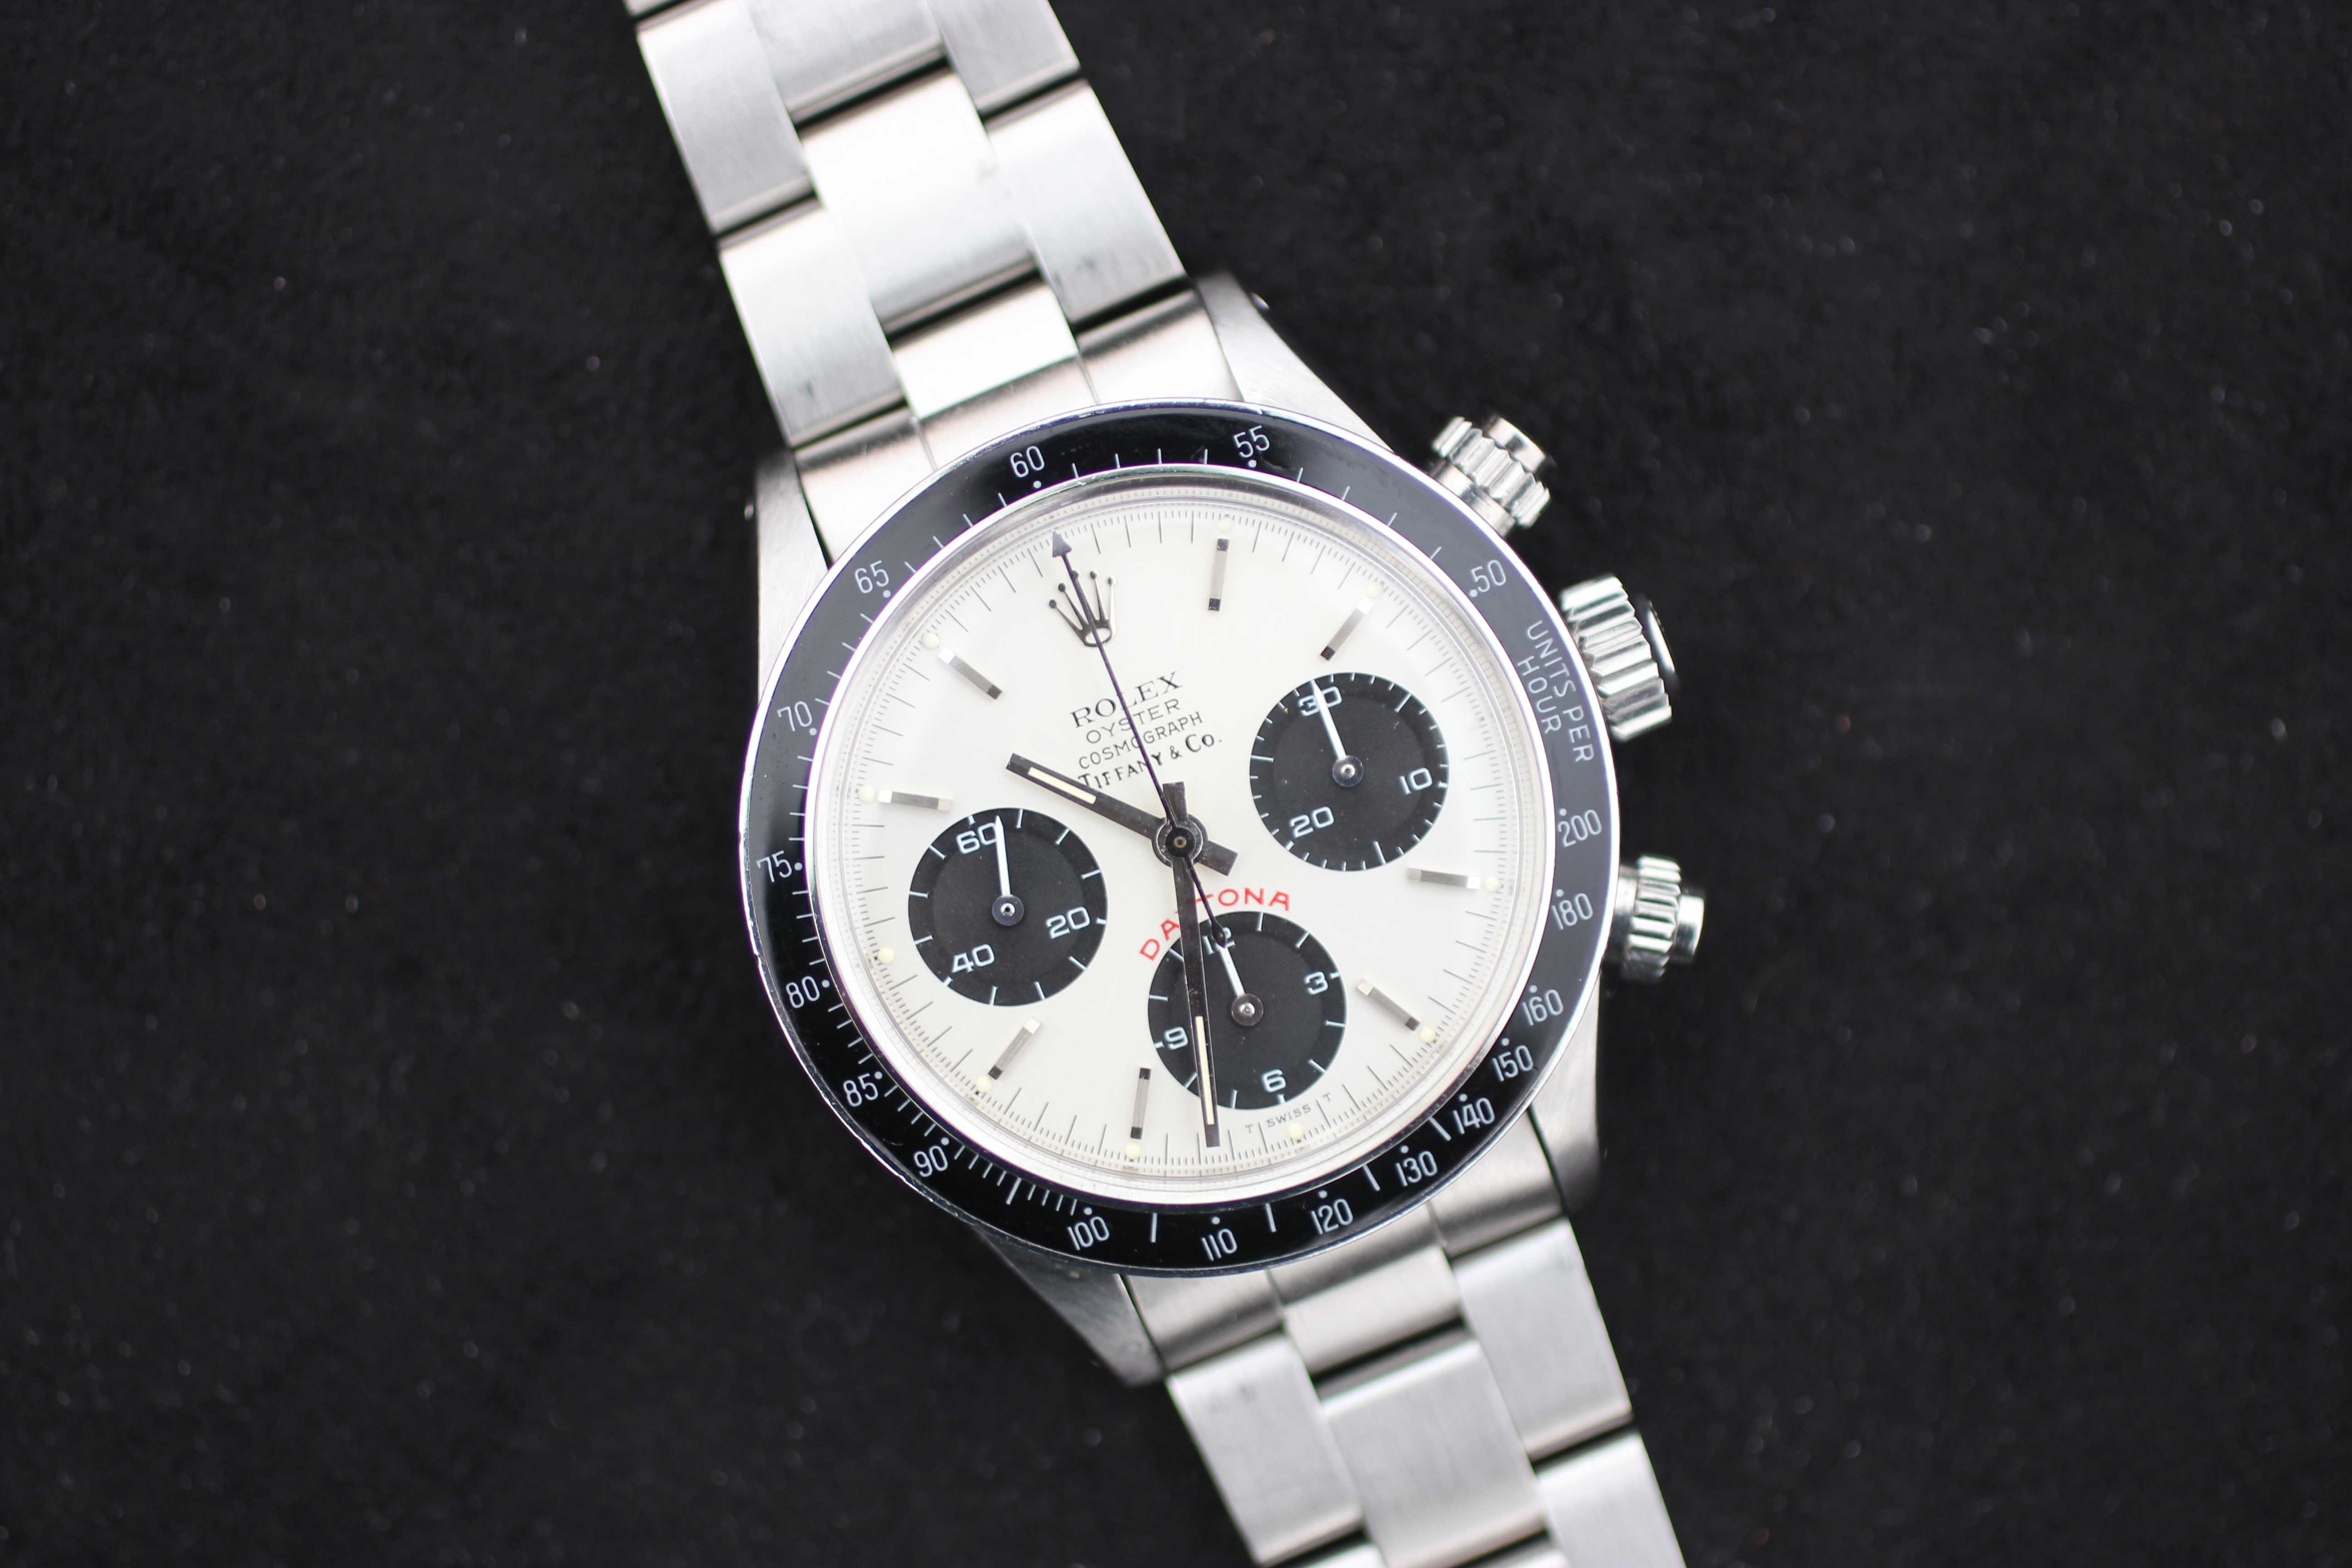 Recapping The 88 Epic Stainless Steel Chronographs Sale At Phillips, A 100% Auction, With Several Massive Hits, Strong Showing From Niche Brands Recapping The 88 Epic Stainless Steel Chronographs Sale At Phillips, A 100% Auction, With Several Massive Hits, Strong Showing From Niche Brands IMG 8677